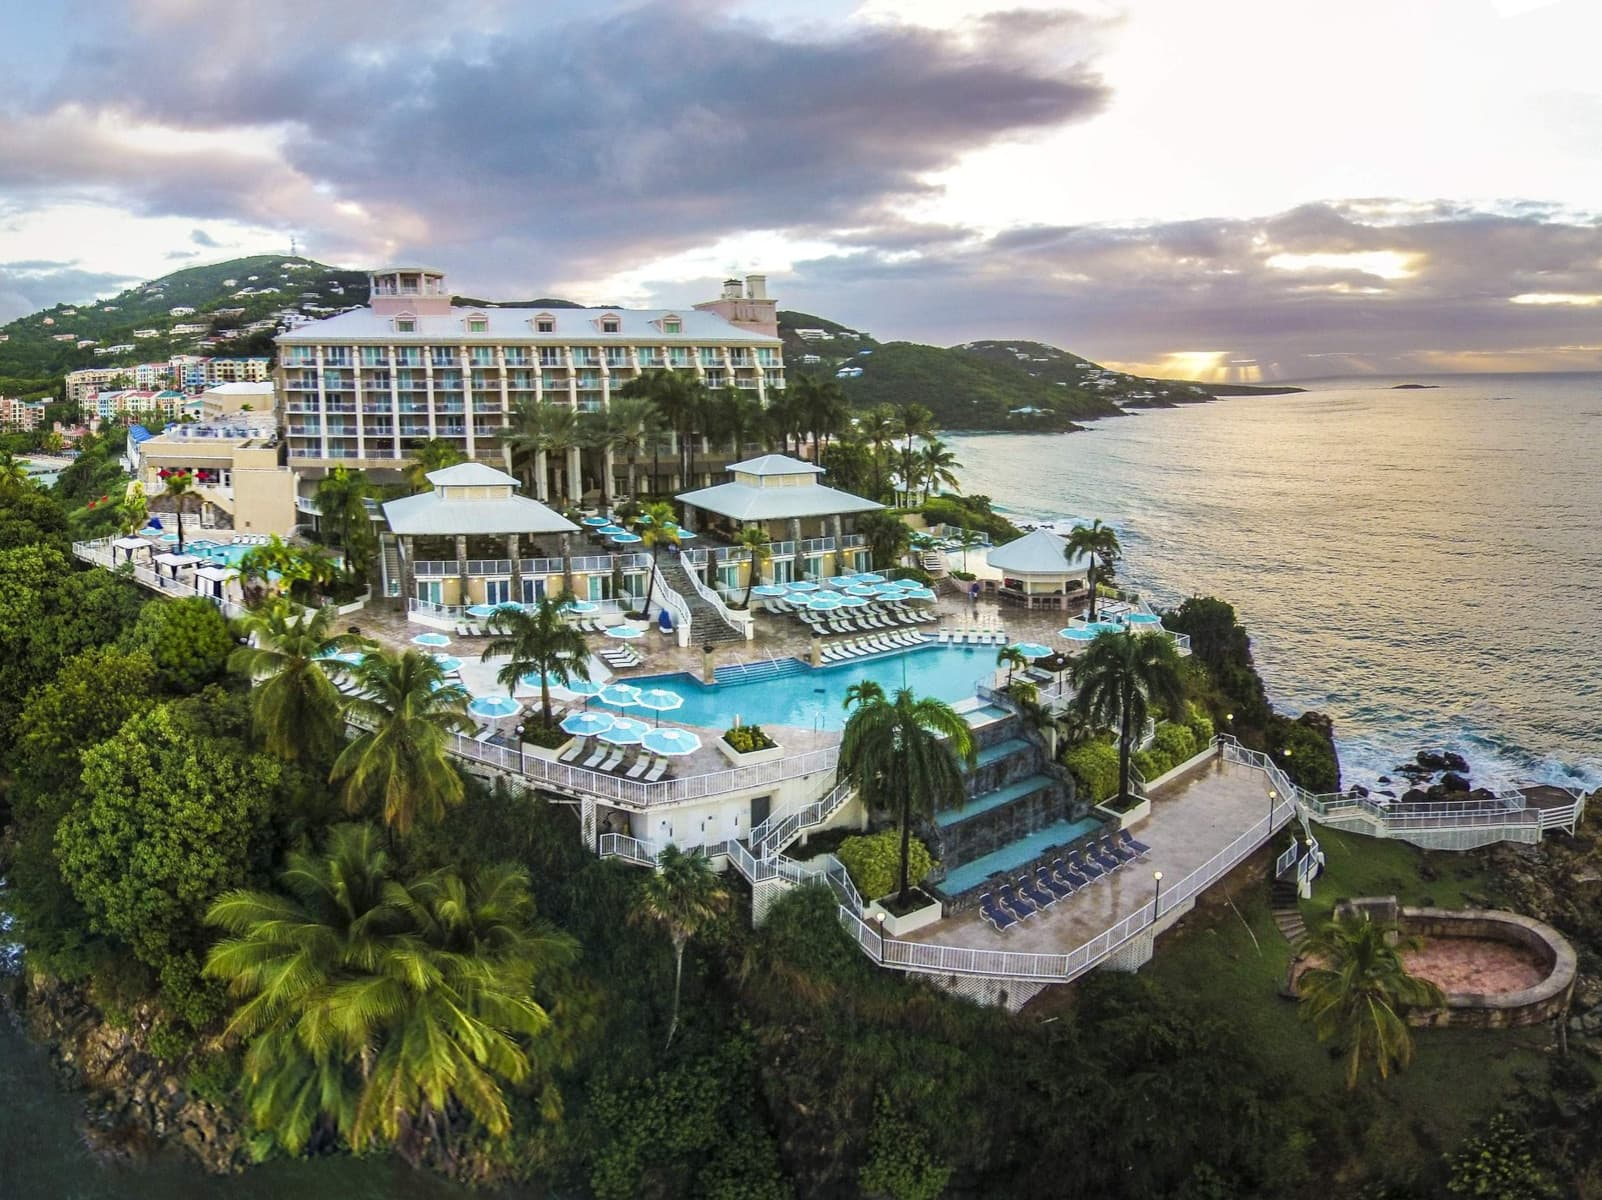 Frenchman Reef & Morning Star Marriott Beach Resort - one of the best tennis resorts for your tennis holidays in U.S. Virgin Islands